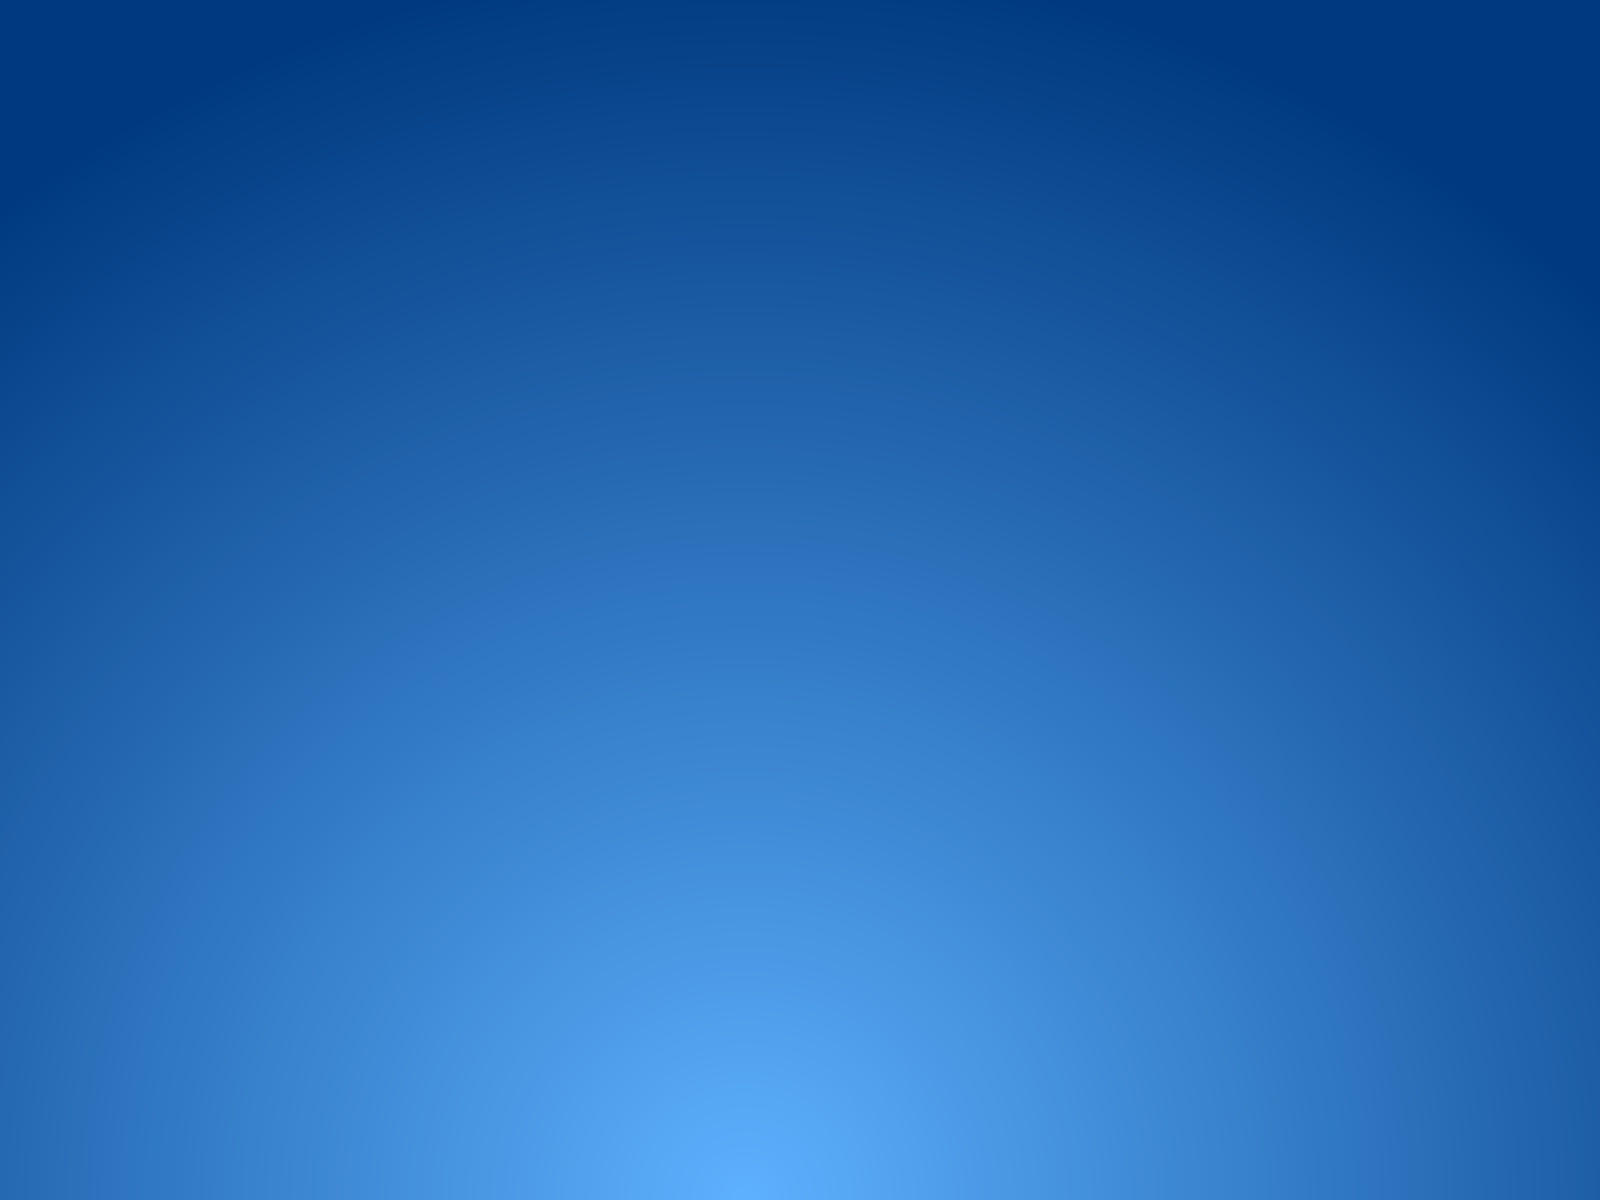 167080 Blue Gradient Background Desktop Wallpaper 1600x1200